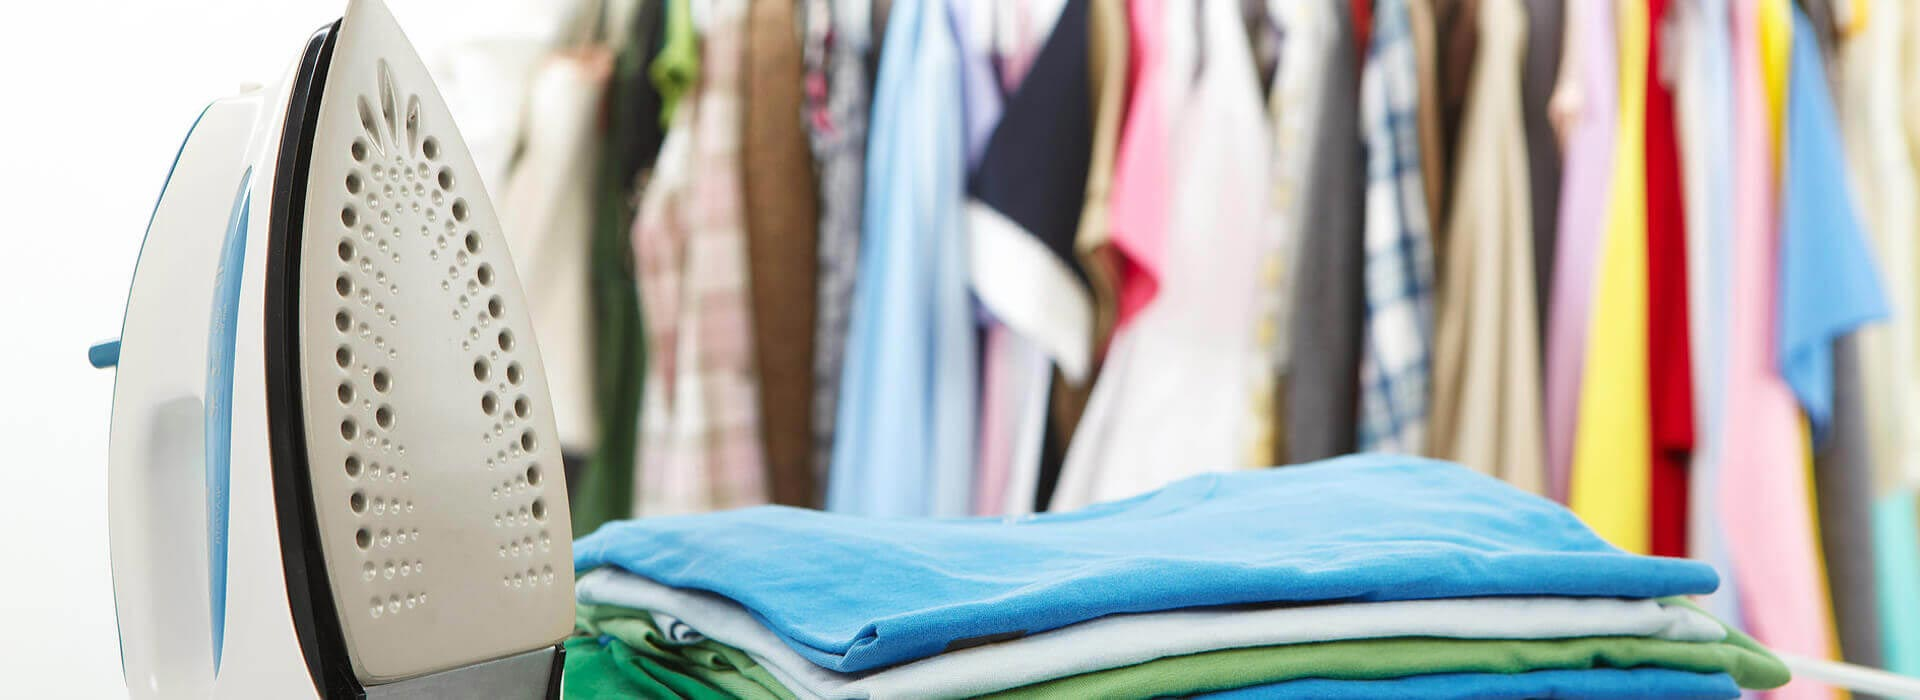 Laundry And Drycleaning Services In Lagos Nigeria